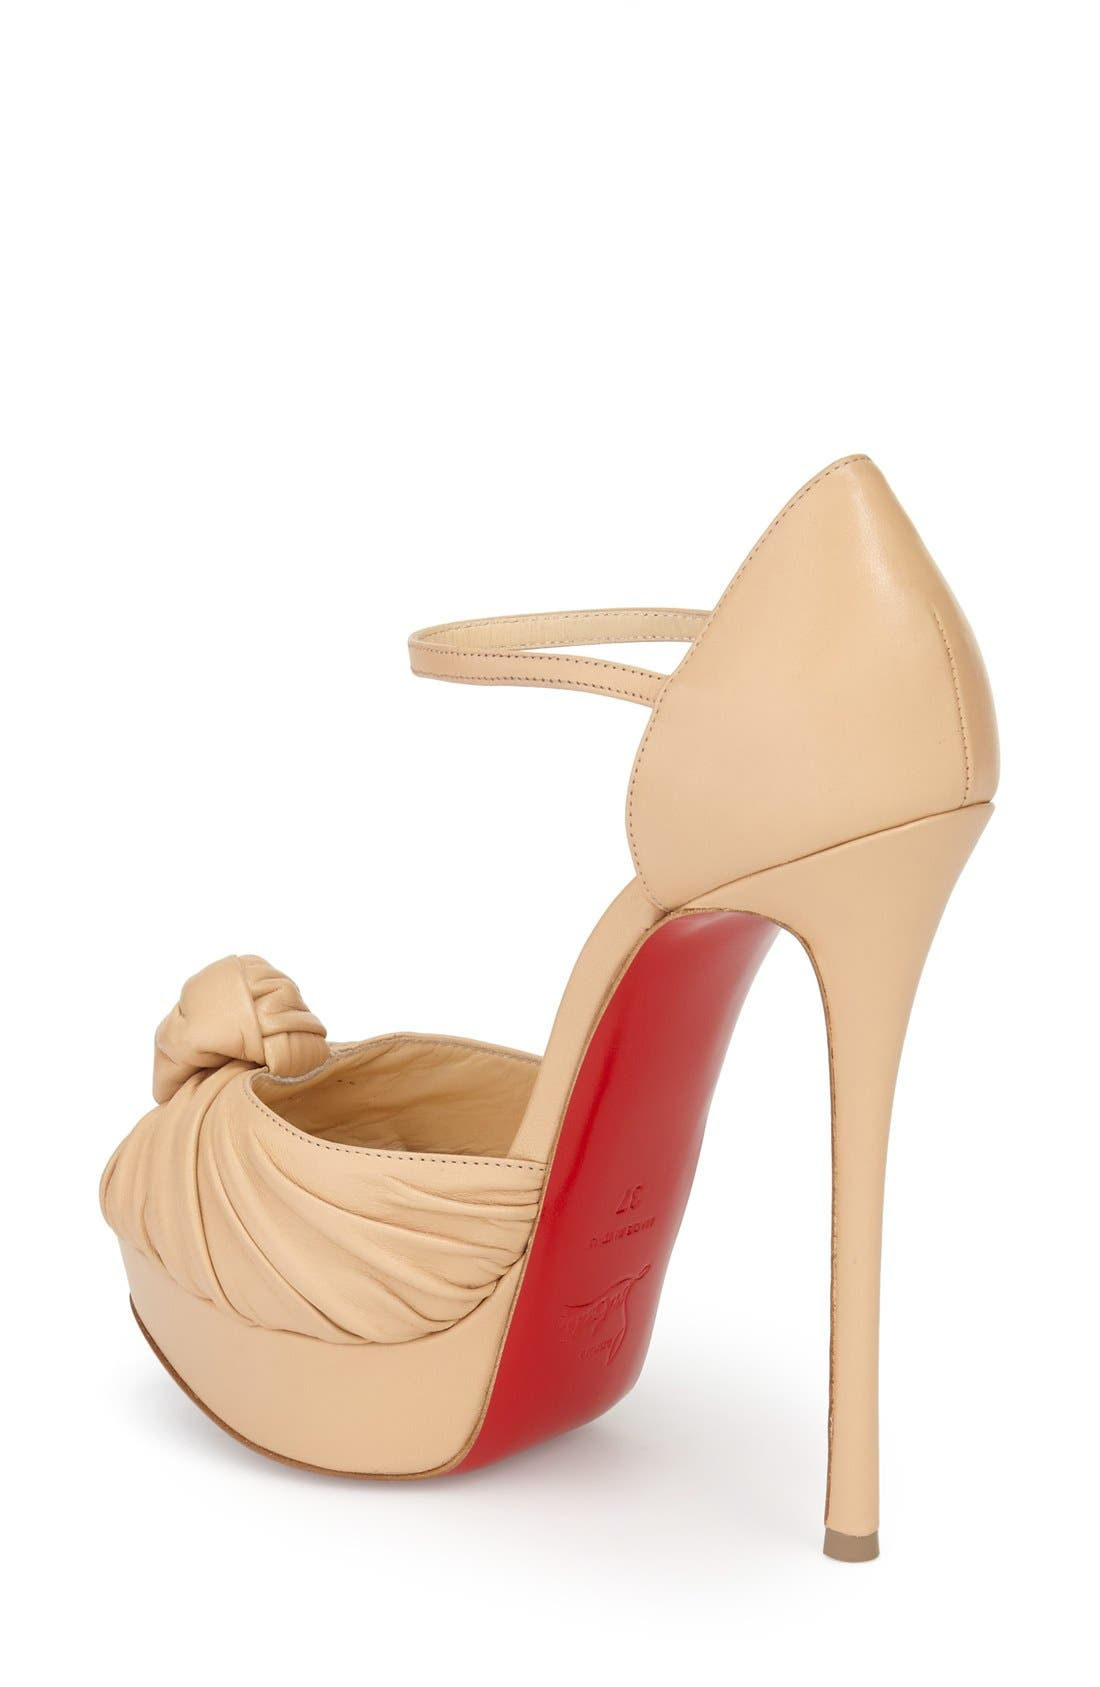 Marchavekel Knot Sandal,                             Alternate thumbnail 2, color,                             Nude Leather